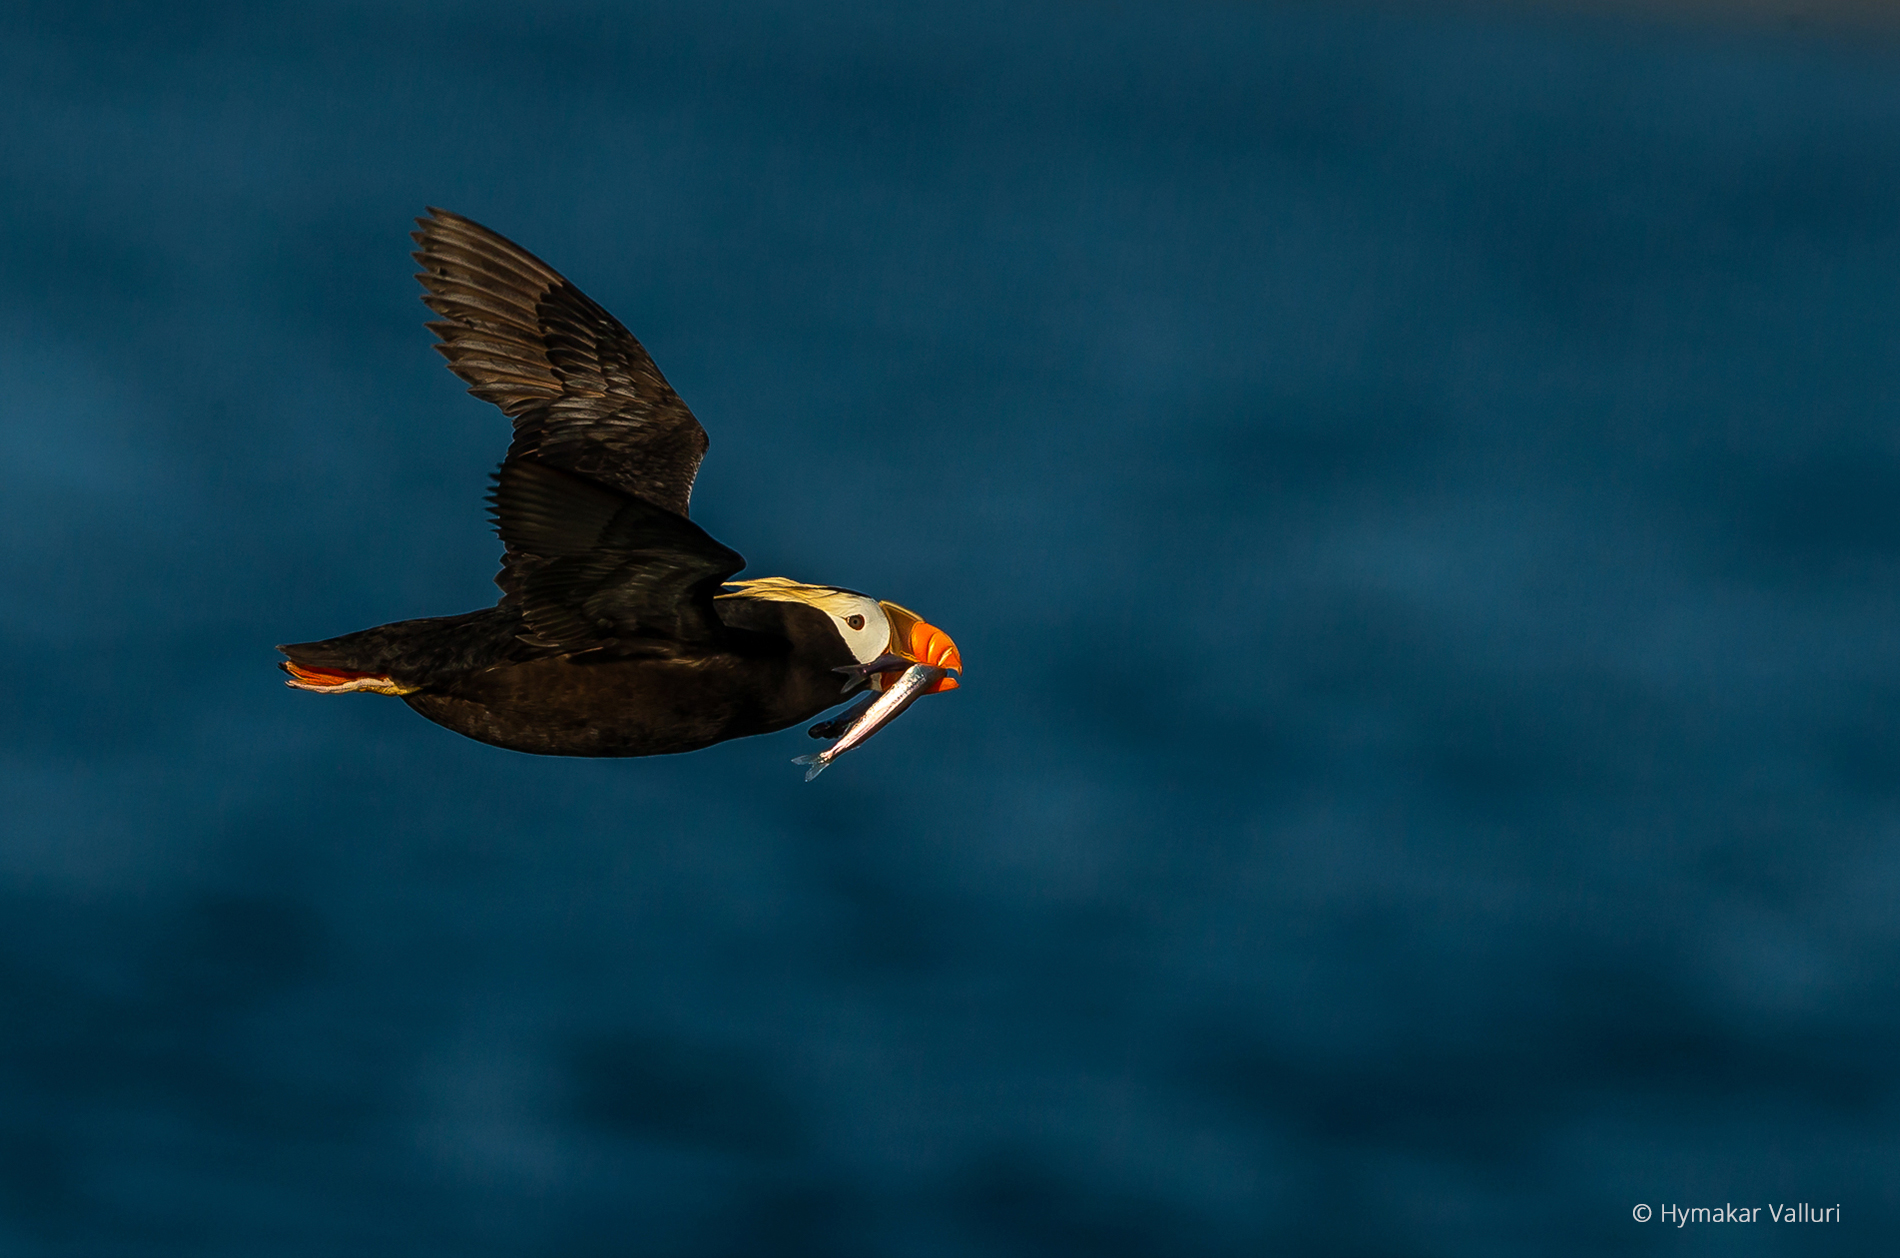 Tufted puffin, Kamchatka